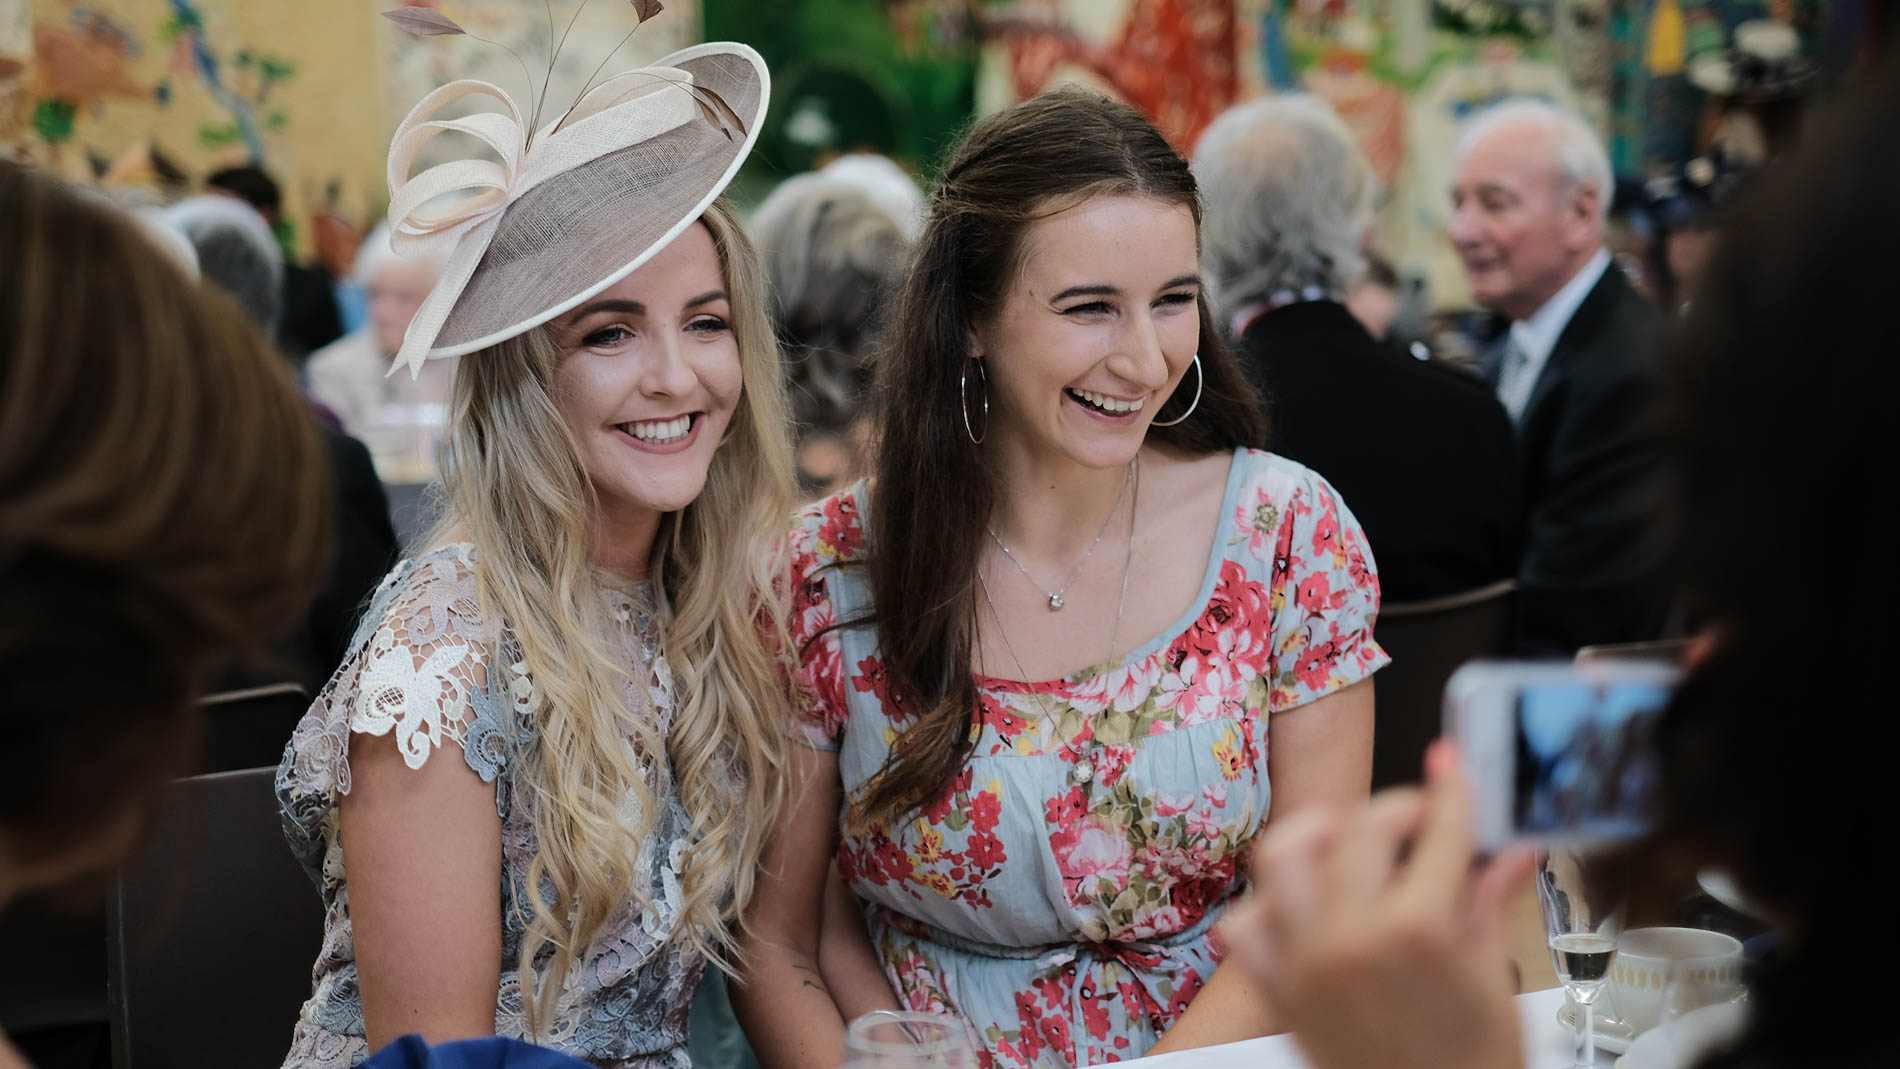 A colour photograph of guests smiling during a wedding reception at Saint Andrew's Church, Clermiston, Edinburgh